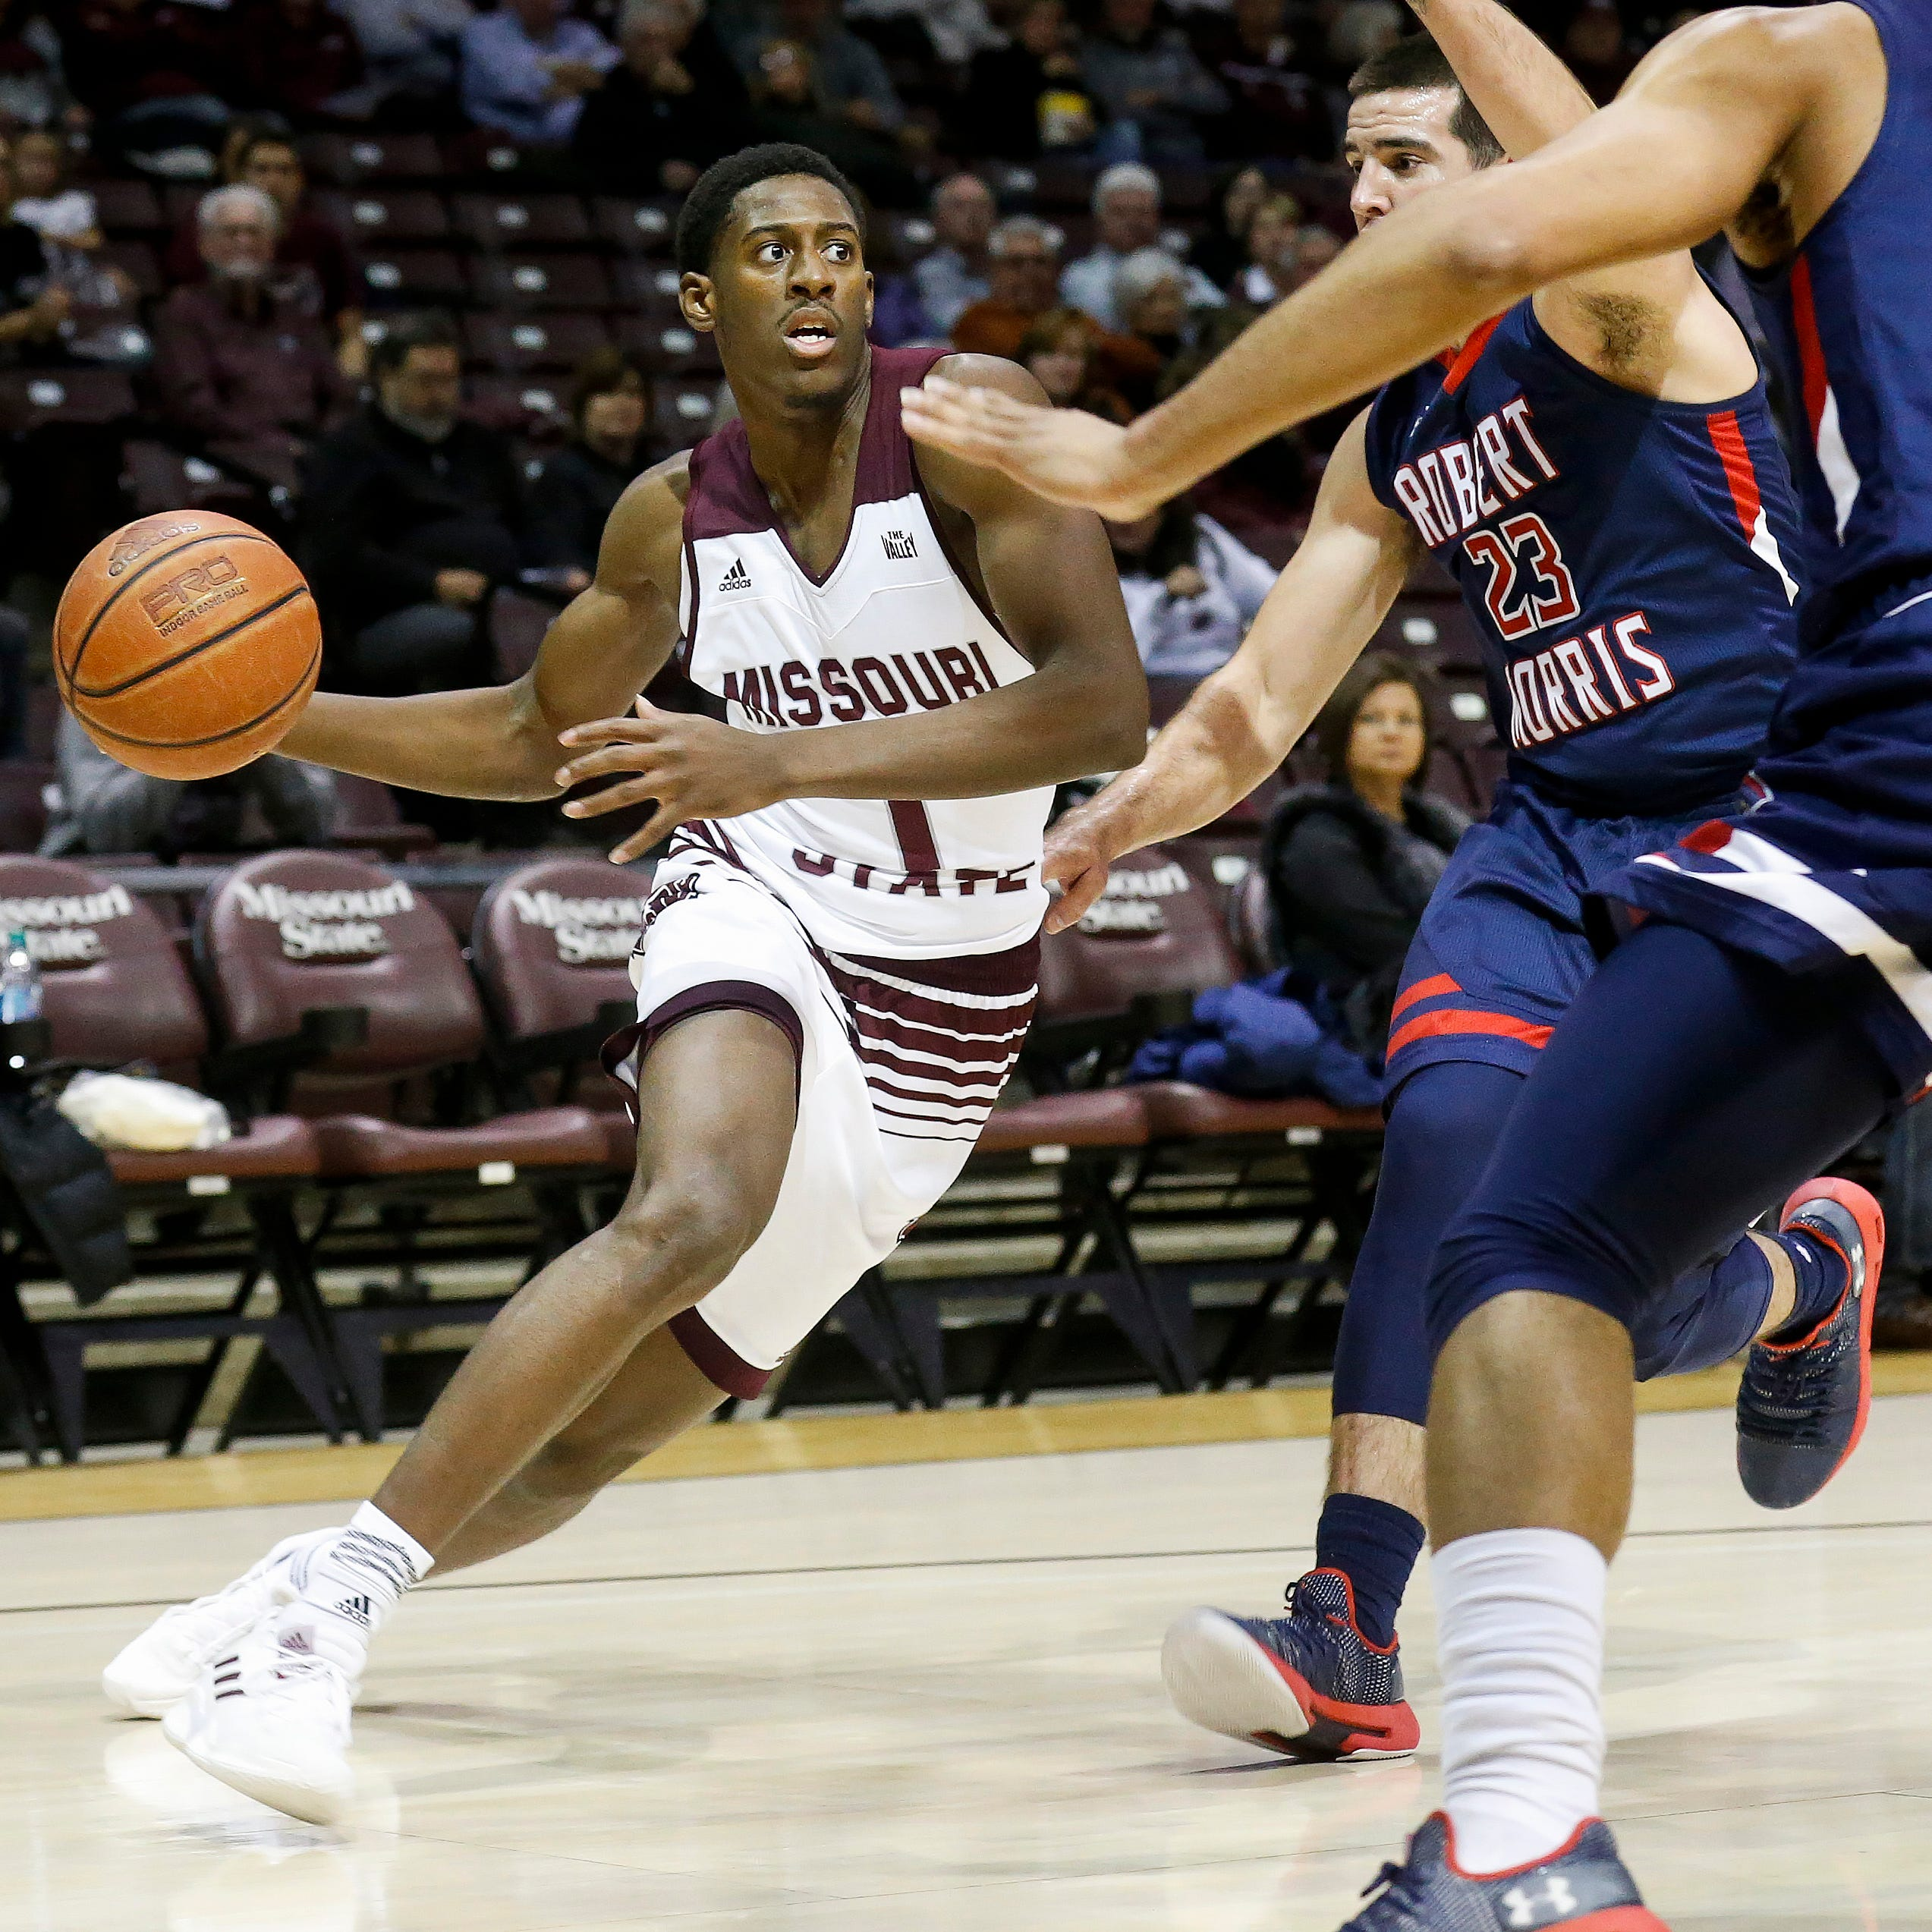 Missouri State holds on to beat Robert Morris in turnover-filled battle